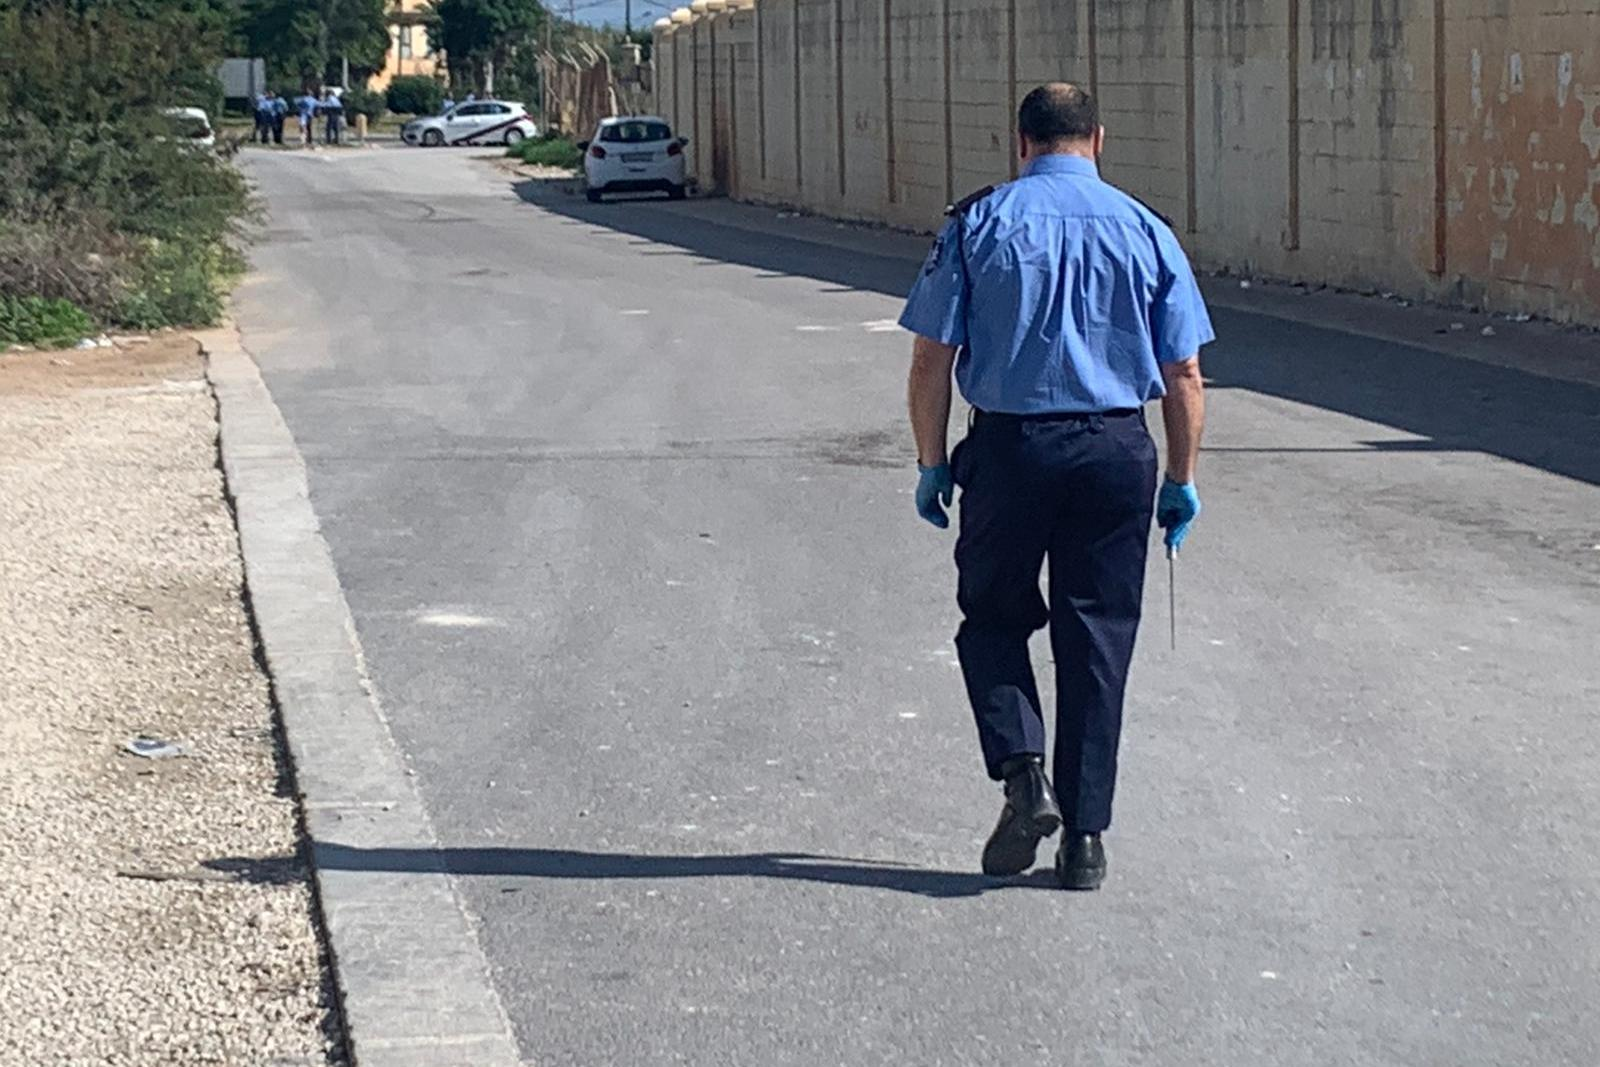 A police officer emerges from the open centre carrying a knife. Photo: Jonathan Borg